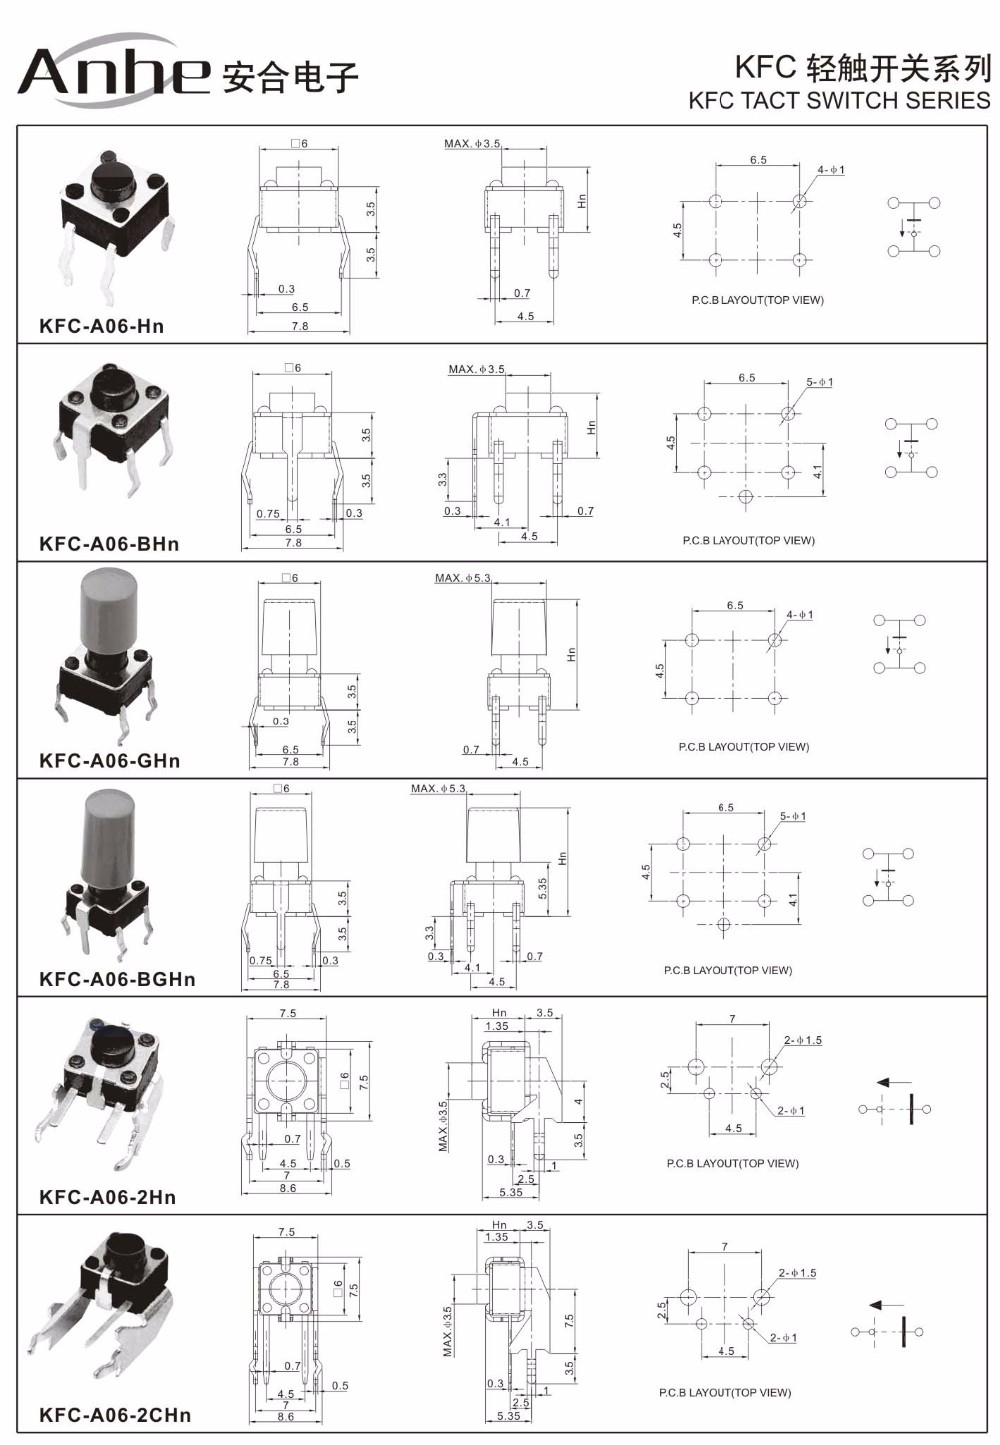 Tactile Tact Switch Momentary Push on Switch 4 Pin Dip For ... on 4 pin telephone jack wiring, atv winch wiring diagram, 4 pin toggle switch, 4 pin wiring harness, 4 pin fan diagram, 4 pin switch wire, rocker switch diagram, solenoid wiring diagram, 4 pin lift switch,